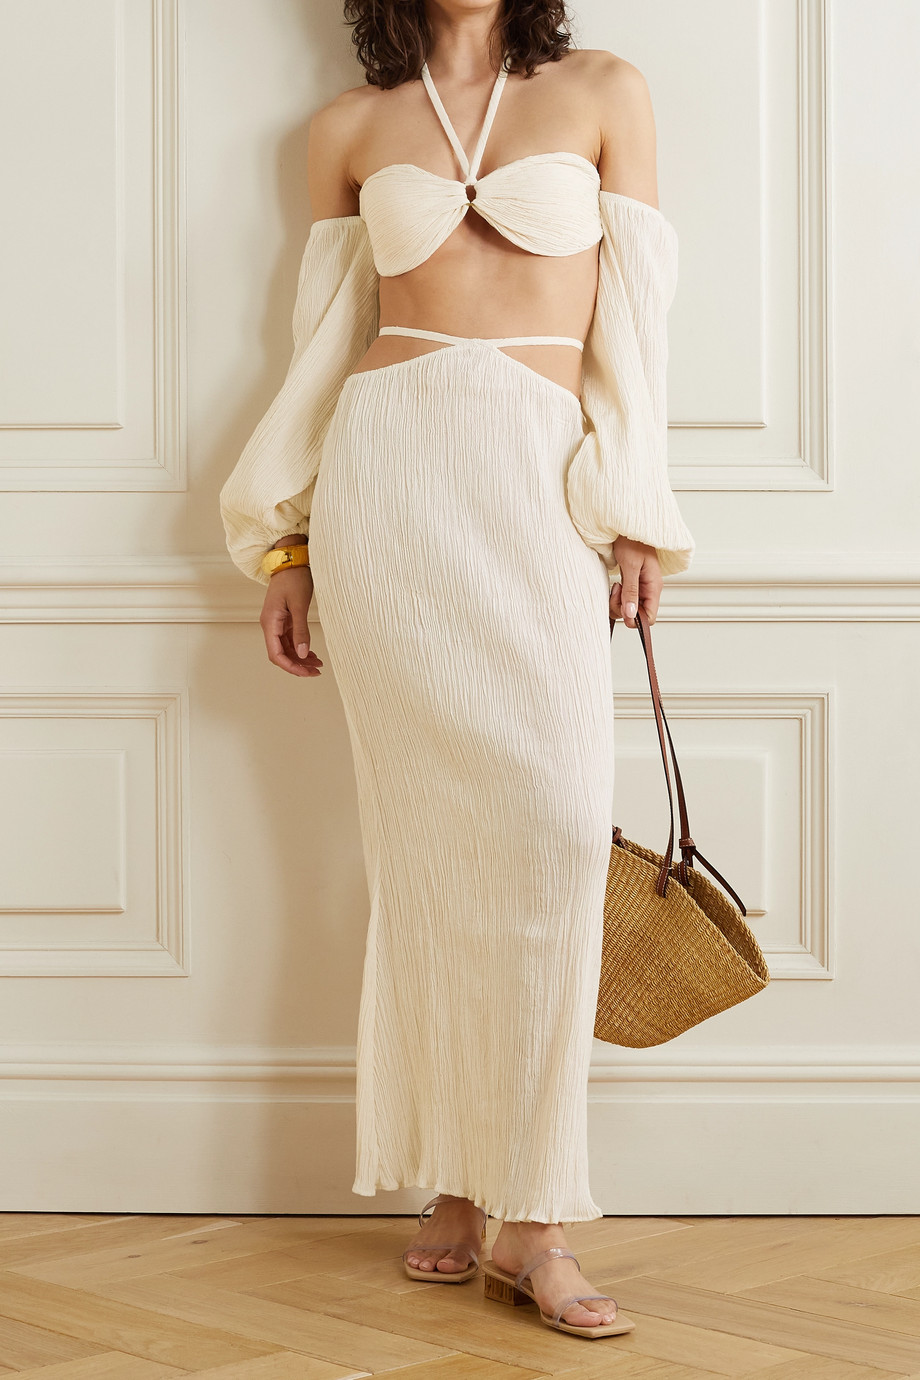 SAVANNAH MORROW THE LABEL + NET SUSTAIN Delilah cutout crinkled organic cotton-gauze maxi skirt